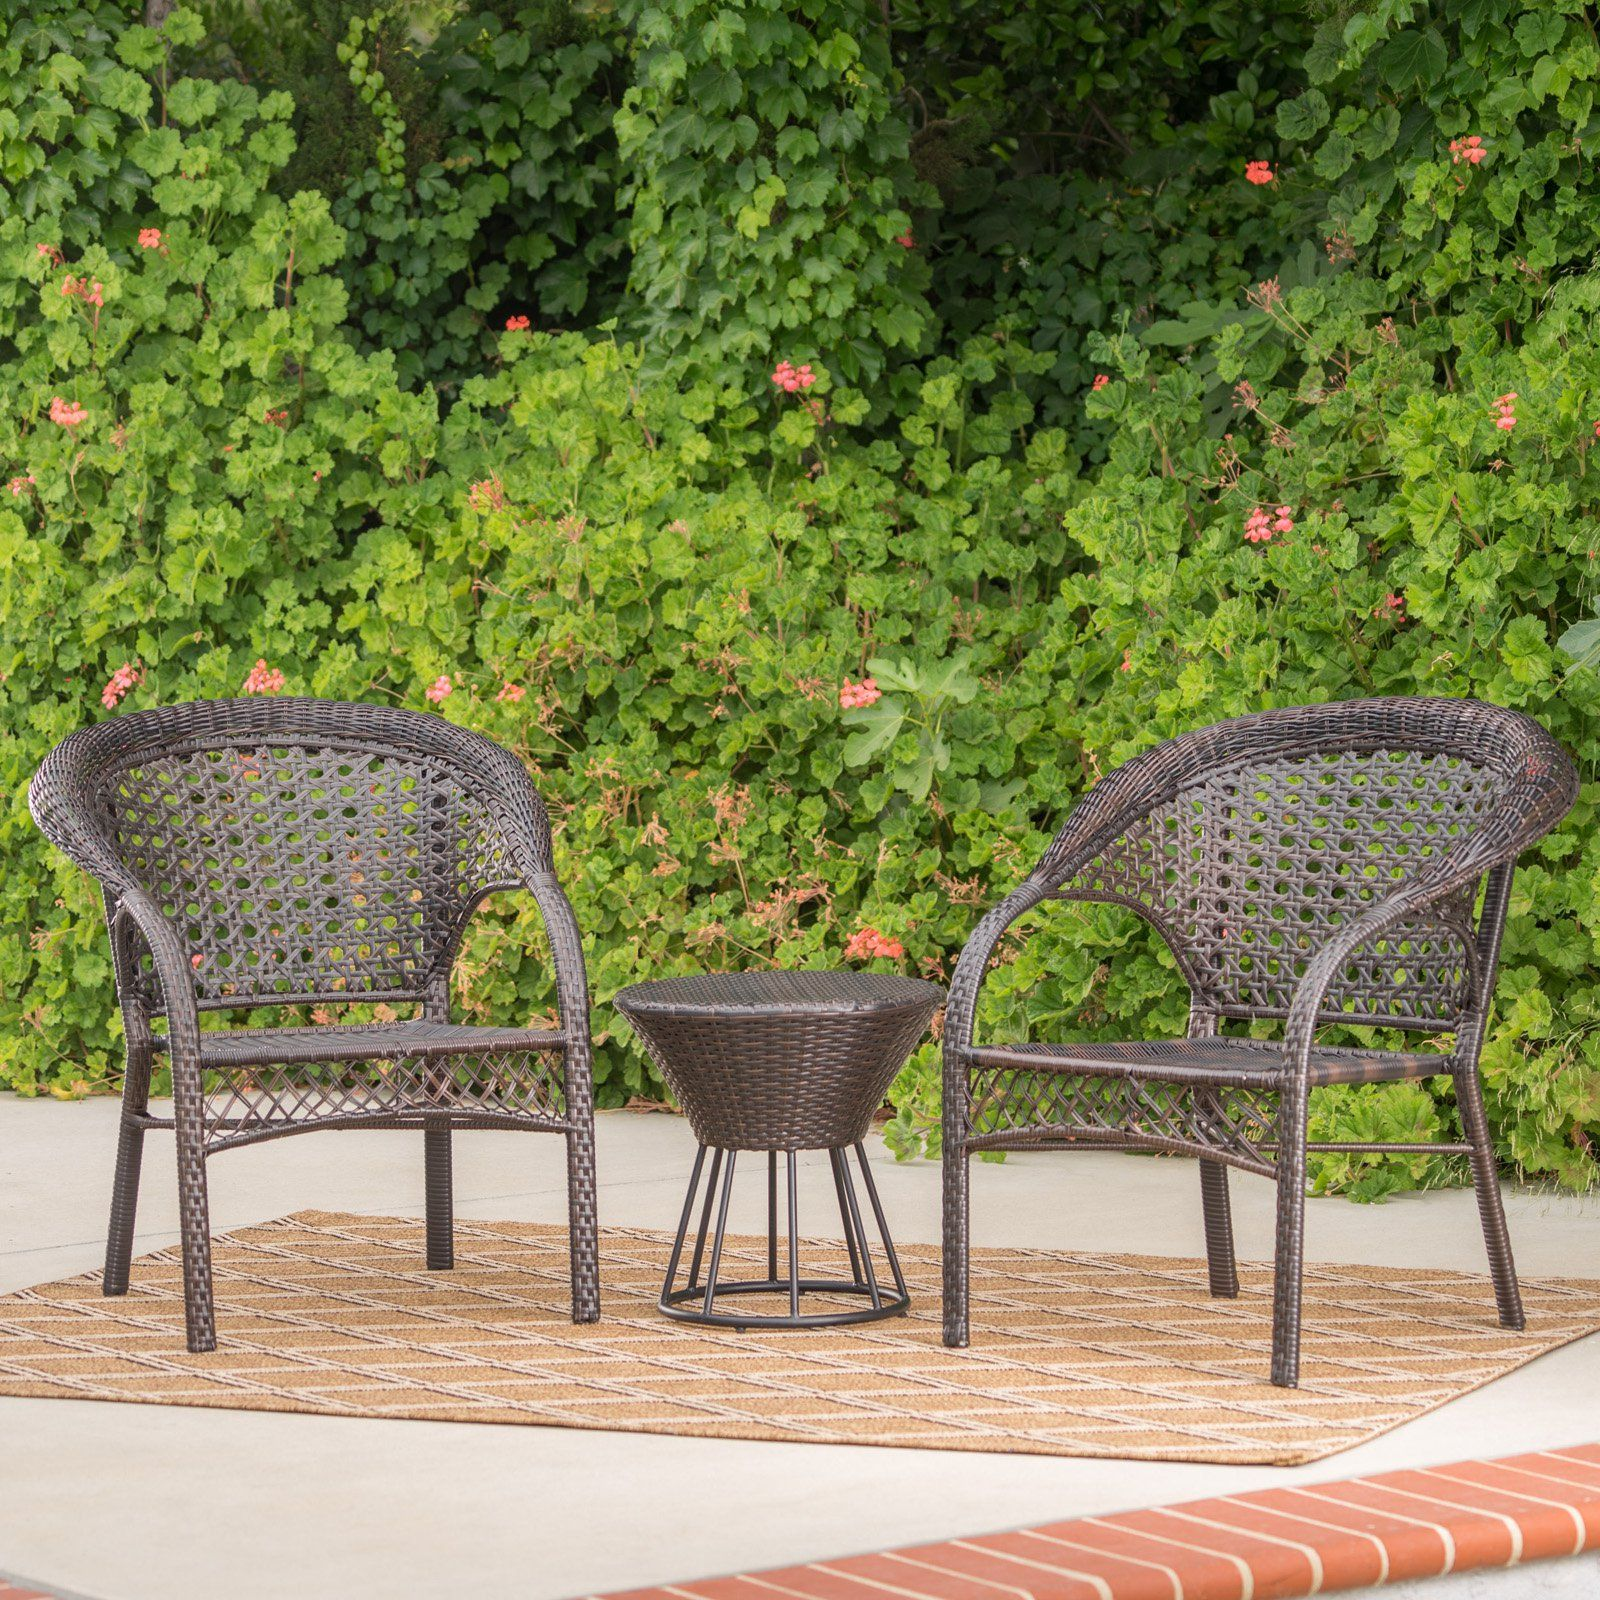 Hitchcock Wicker 3 Piece Outdoor Stacking Chair Chat Set Outdoor